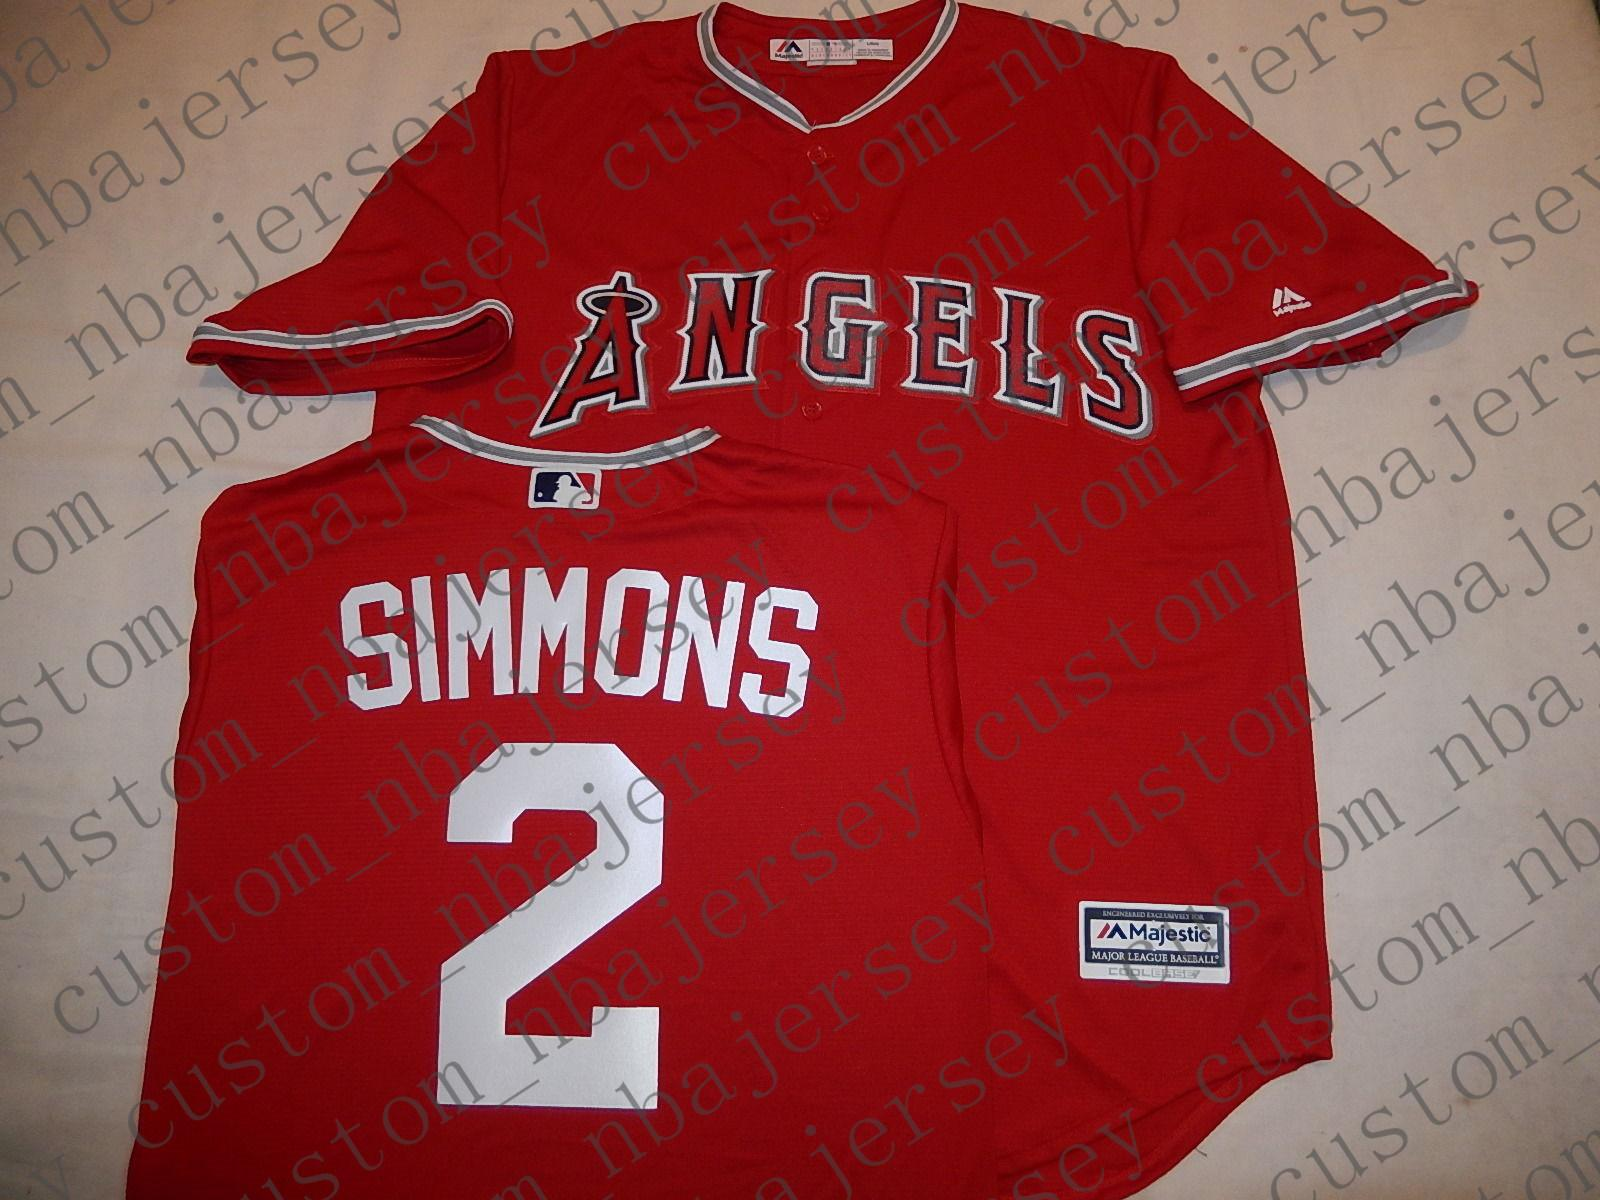 219a31889 2019 Cheap Custom Anaheim ANDRELTON SIMMONS Baseball Jerseys Red Stitched  Retro Mens Jerseys Customize Any Name Number MEN WOMEN YOUTH XS 5XL From ...